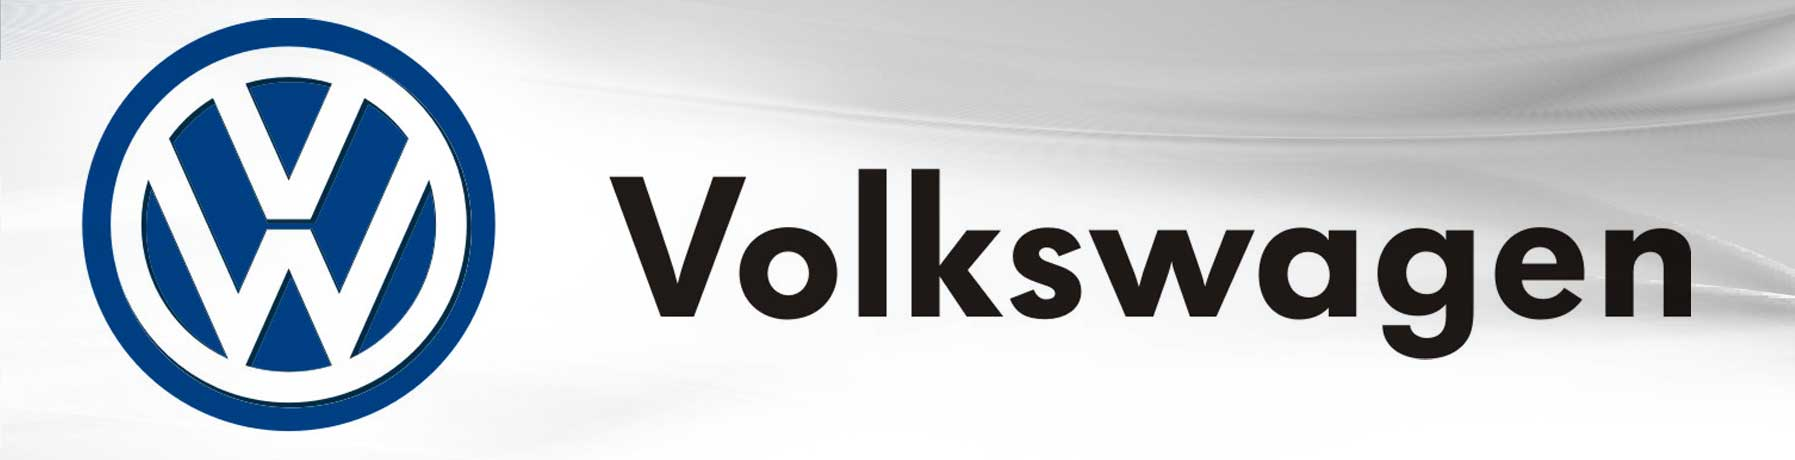 We service Volkswagen cars